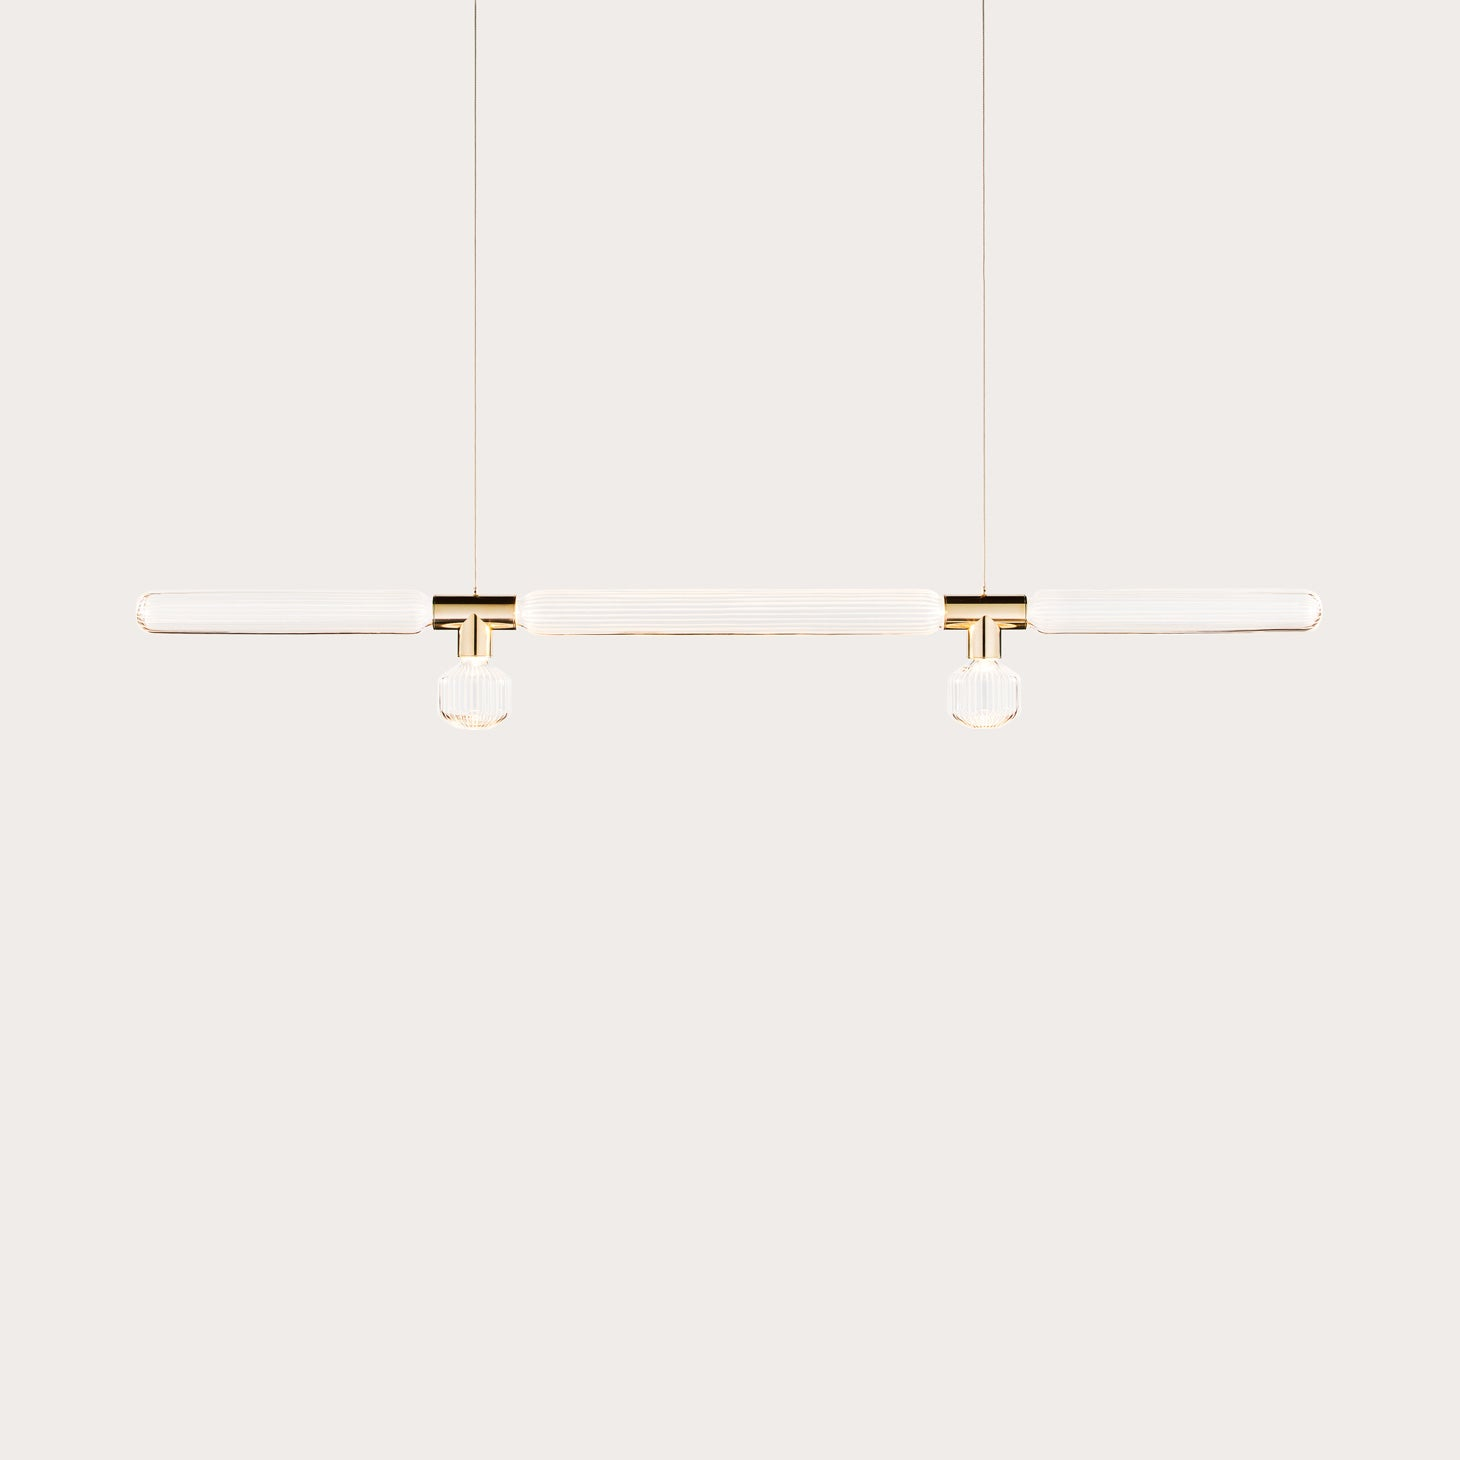 Cipher Horizontal Pendant L Lighting Yabu Pushelberg Designer Furniture Sku: 011-160-10001